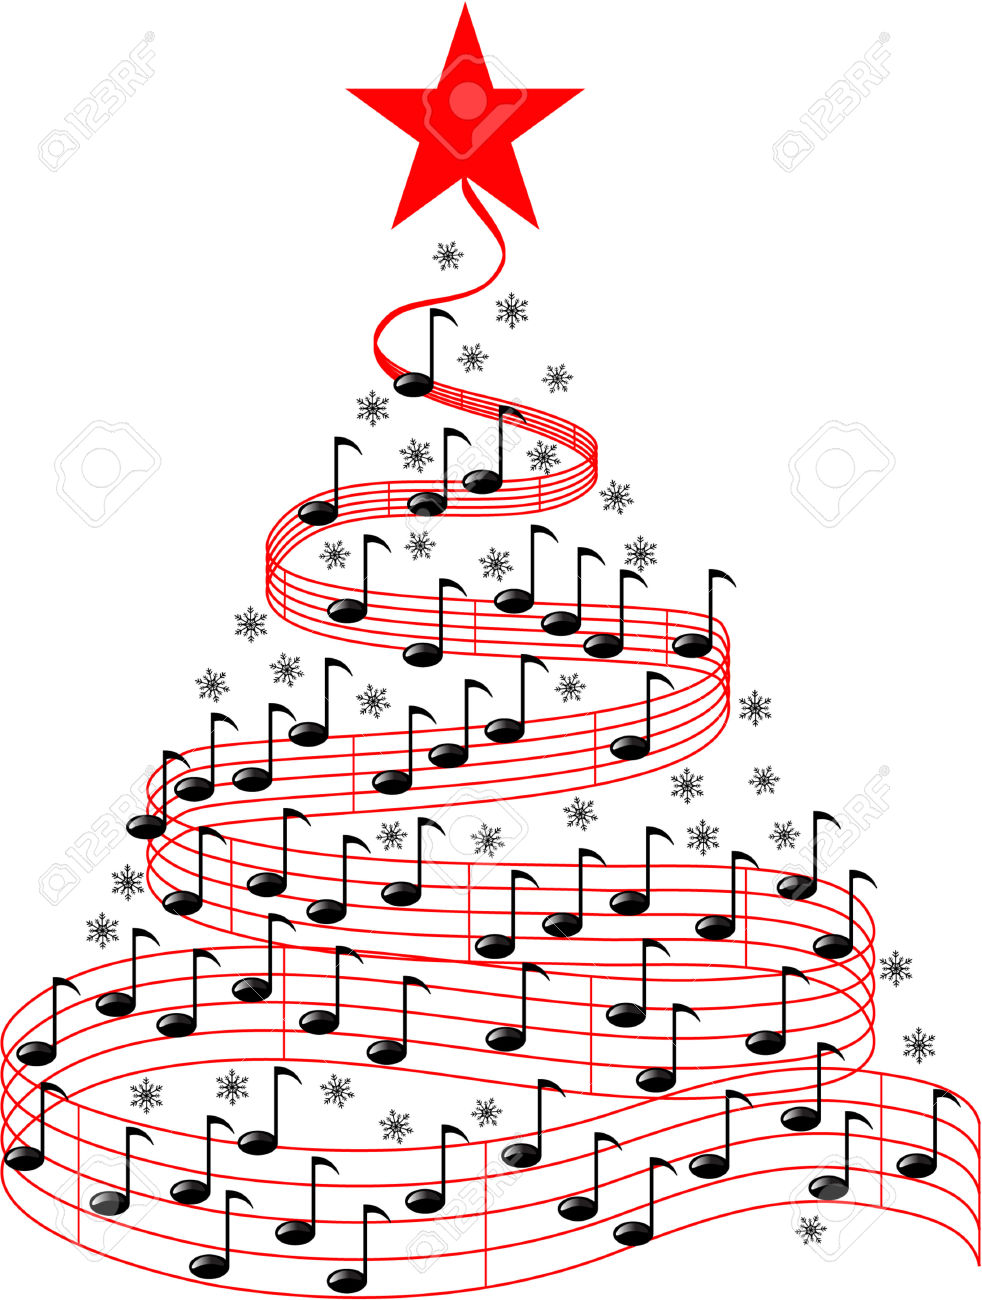 Christmas music notes clipart .